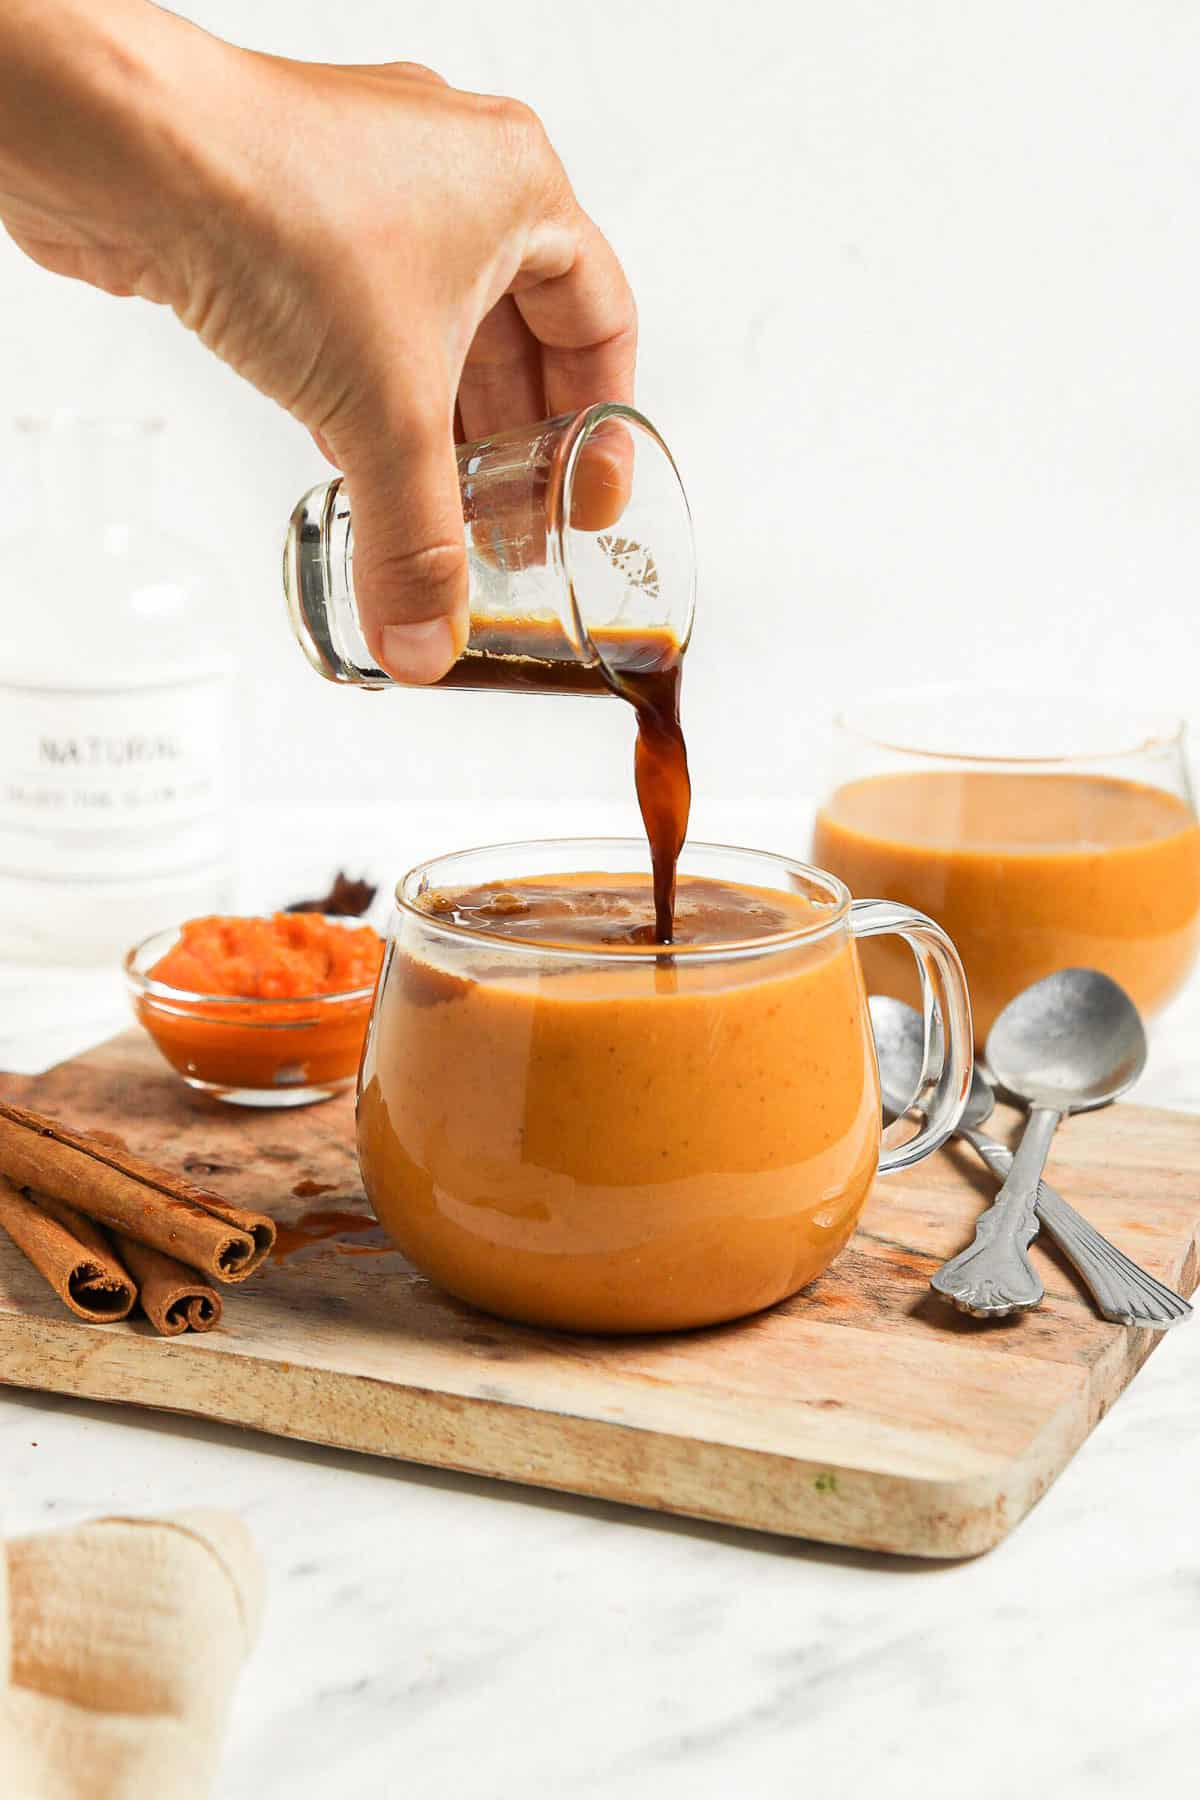 a clear glass coffee mug, filled with a homemade pumpkin spice latte, with a shot of espresso being poured into it